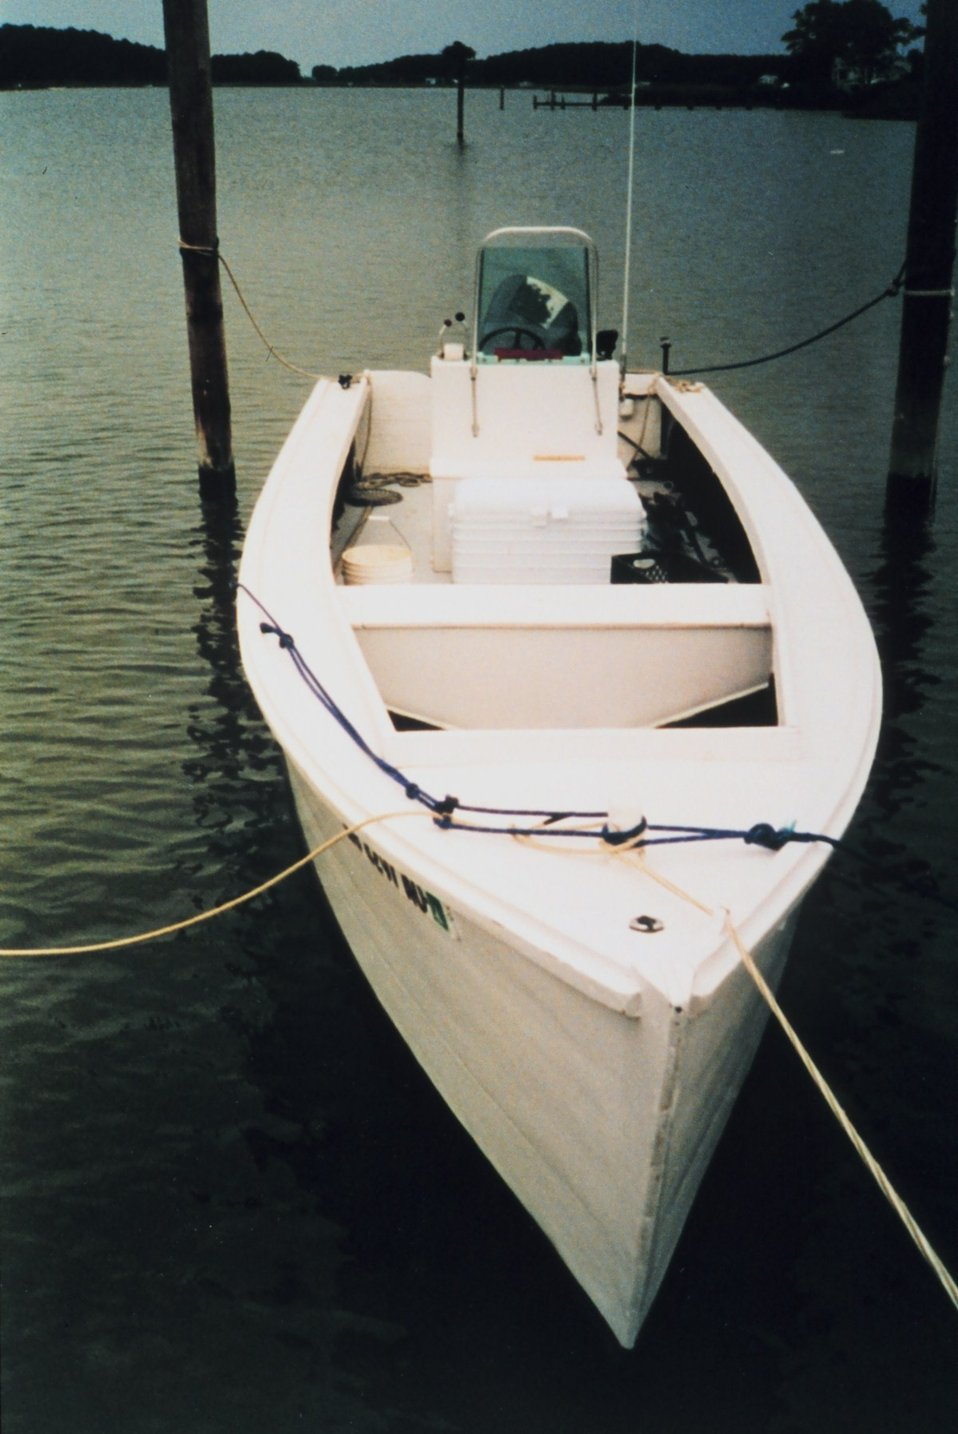 A typical 'home-made' skiff used by St. Mary's County watermen.